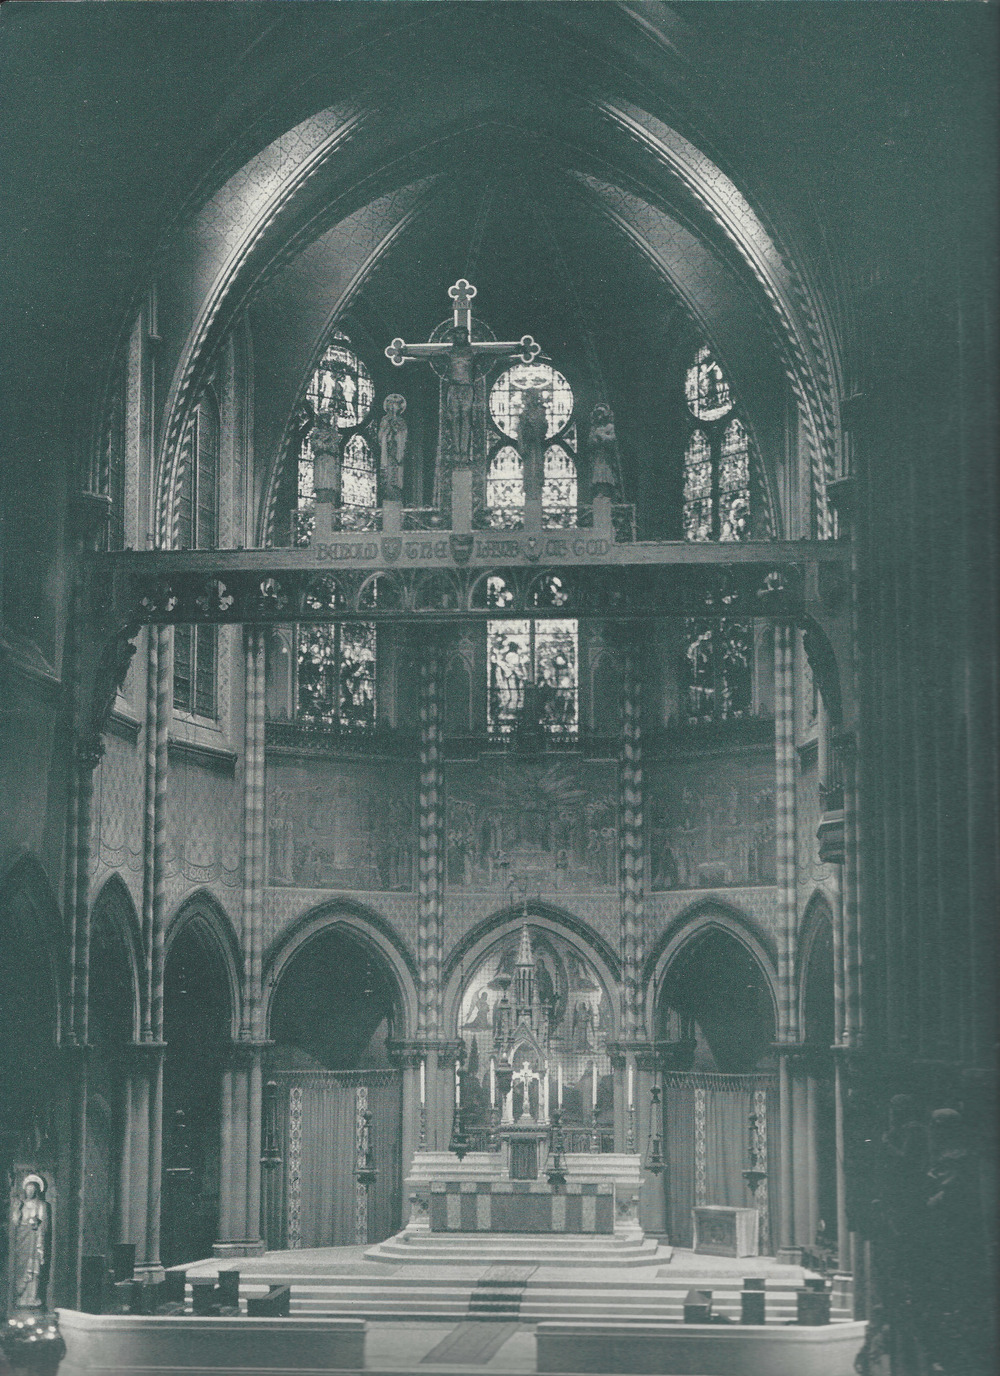 Interior of Saint Mary's in the 1950s